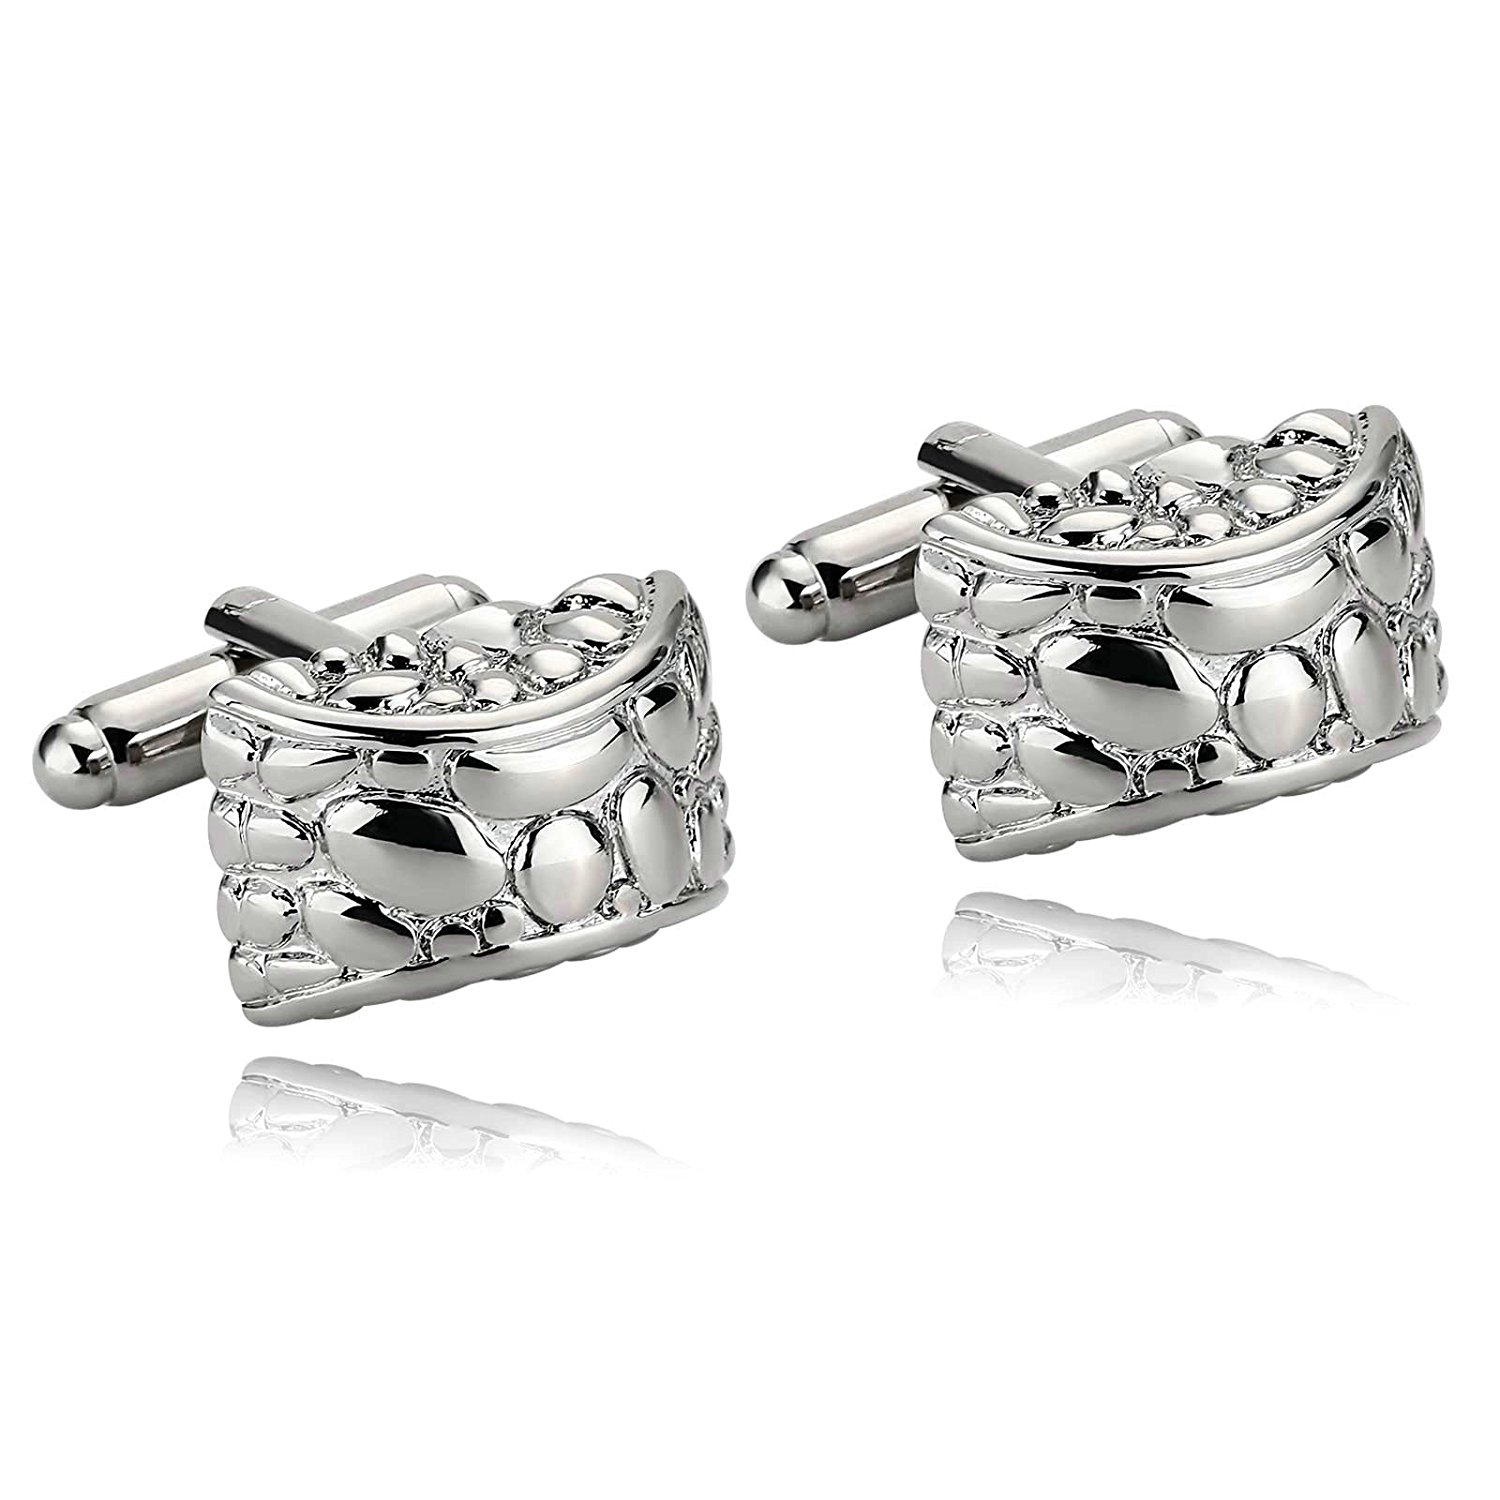 Jewelry Mens Cufflinks Stainless Steel 5 Styles Tuxedo Shirt Dress Suit With Xmas Gift Box Aooaz